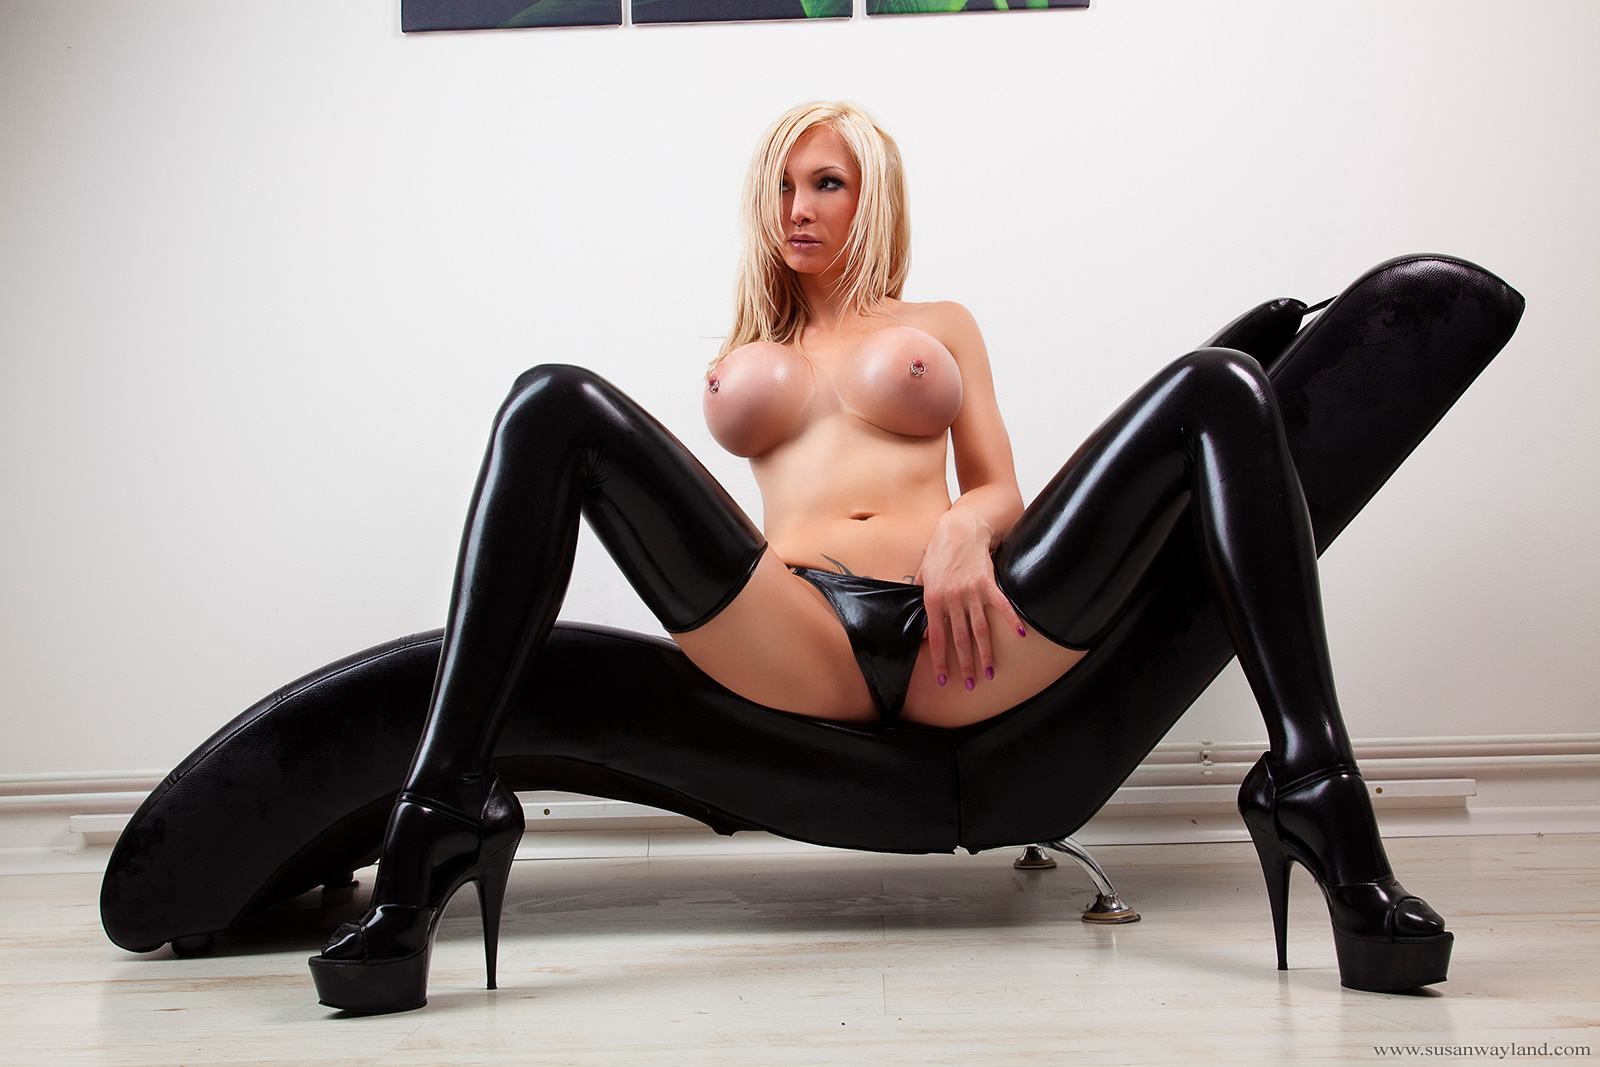 Alison tyler in hot black latex with huge strapon gives